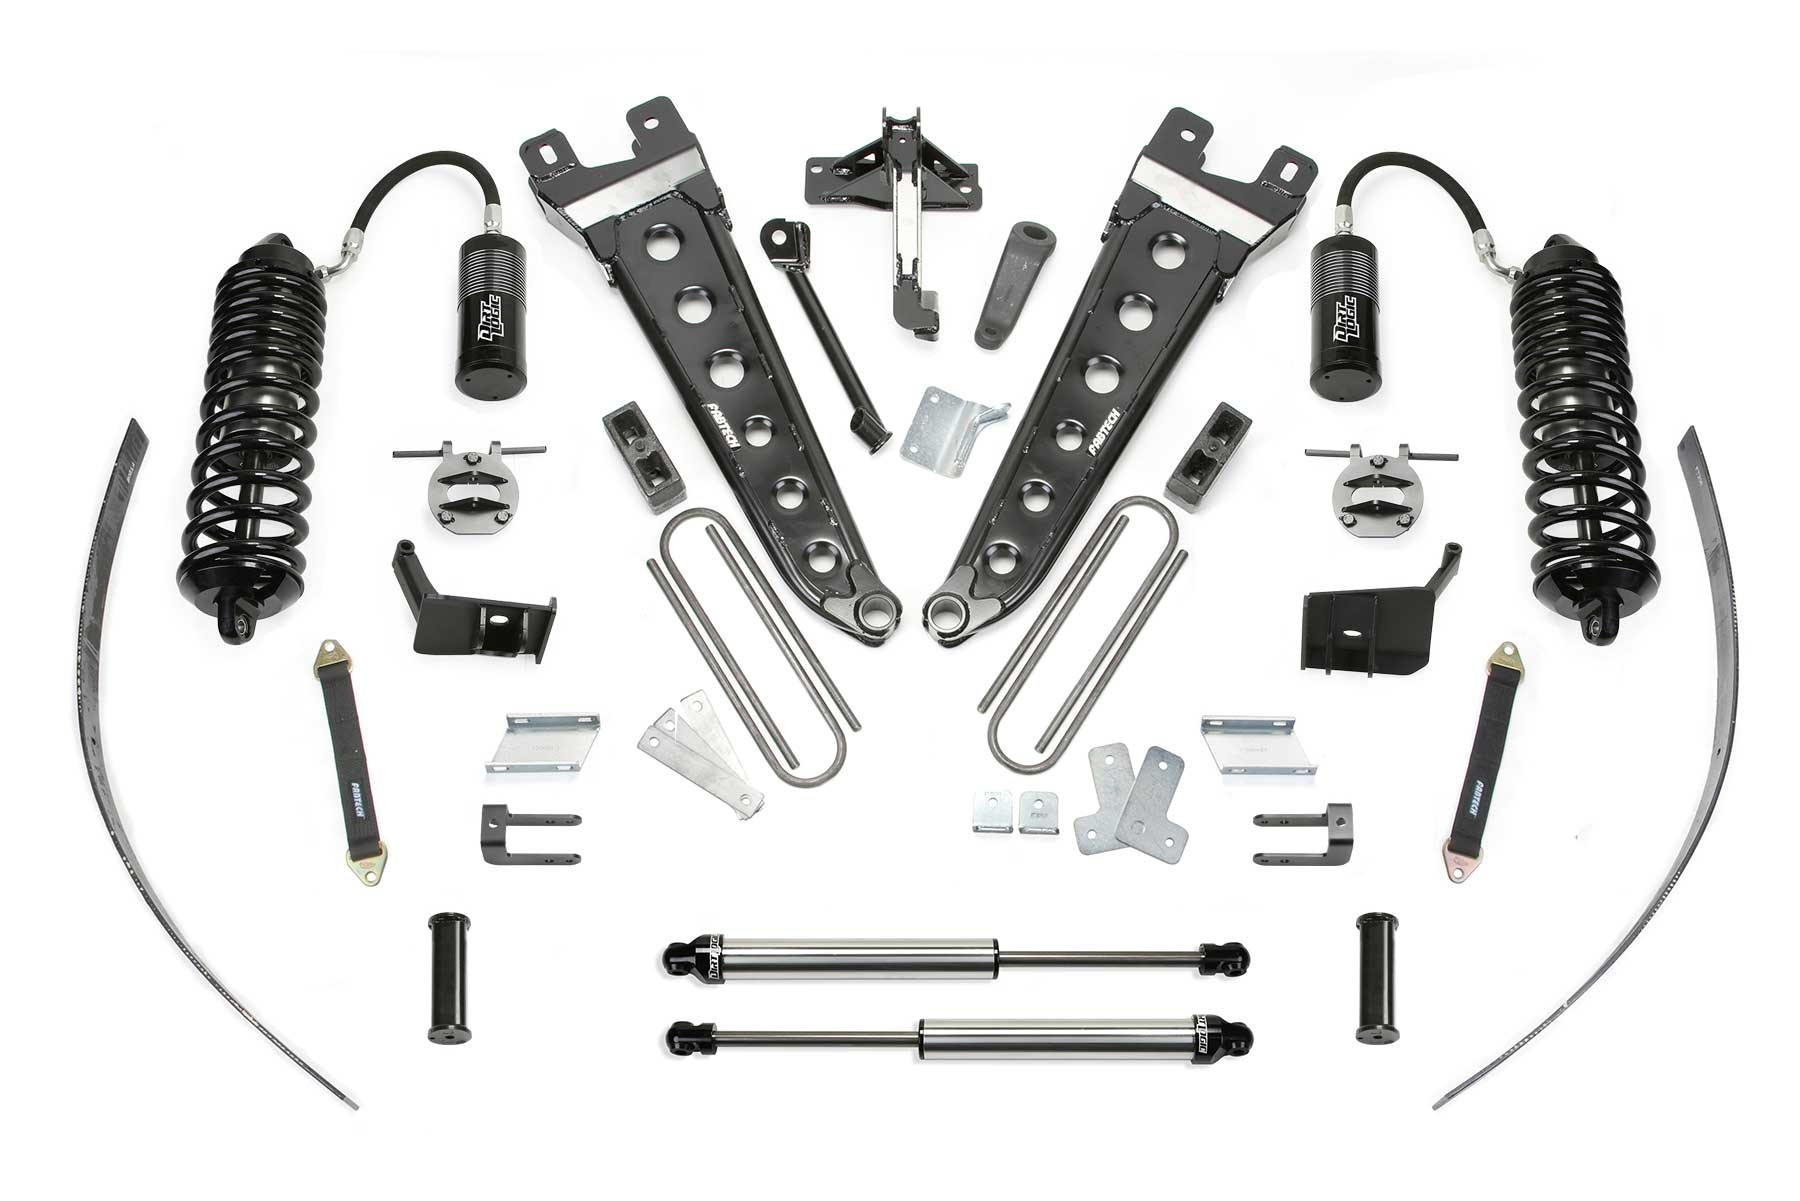 FABTECH- 2011-16 FORD F250 4WD- 8″ RADIUS ARM SYSTEM W/ FRONT DIRT LOGIC 4.0 RESI COILOVERS & REAR DIRT LOGIC 2.25 SHOCKS